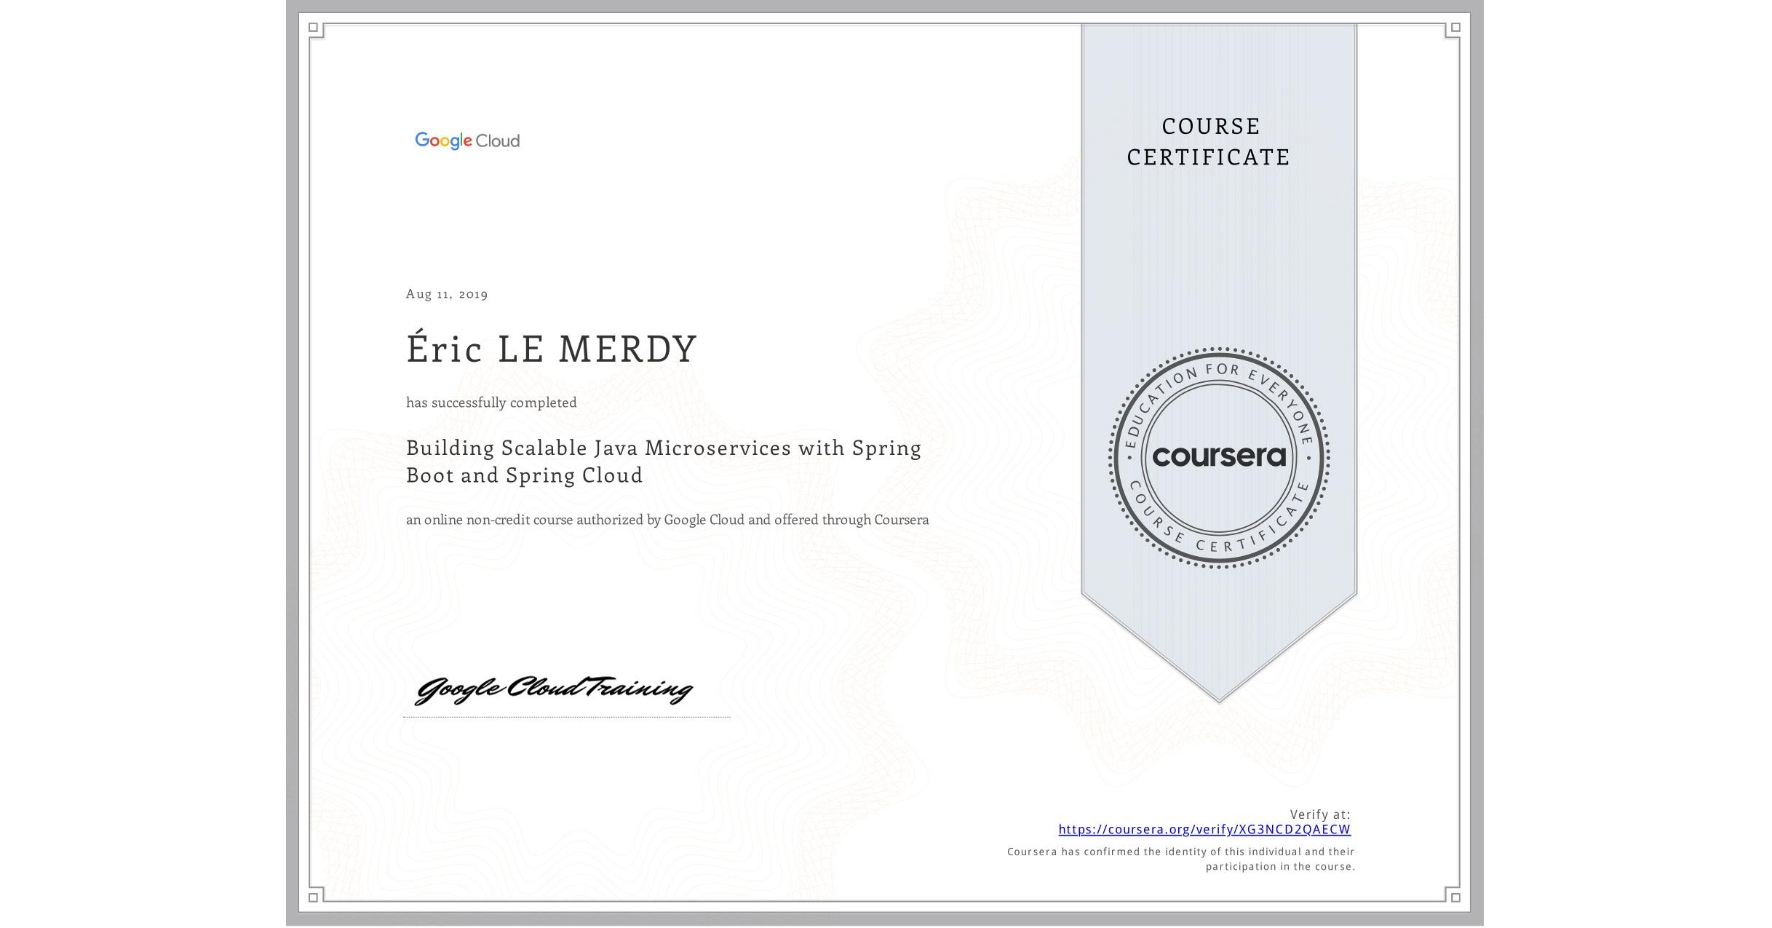 View certificate for Éric LE MERDY, Building Scalable Java Microservices with Spring Boot and Spring Cloud, an online non-credit course authorized by Google Cloud and offered through Coursera